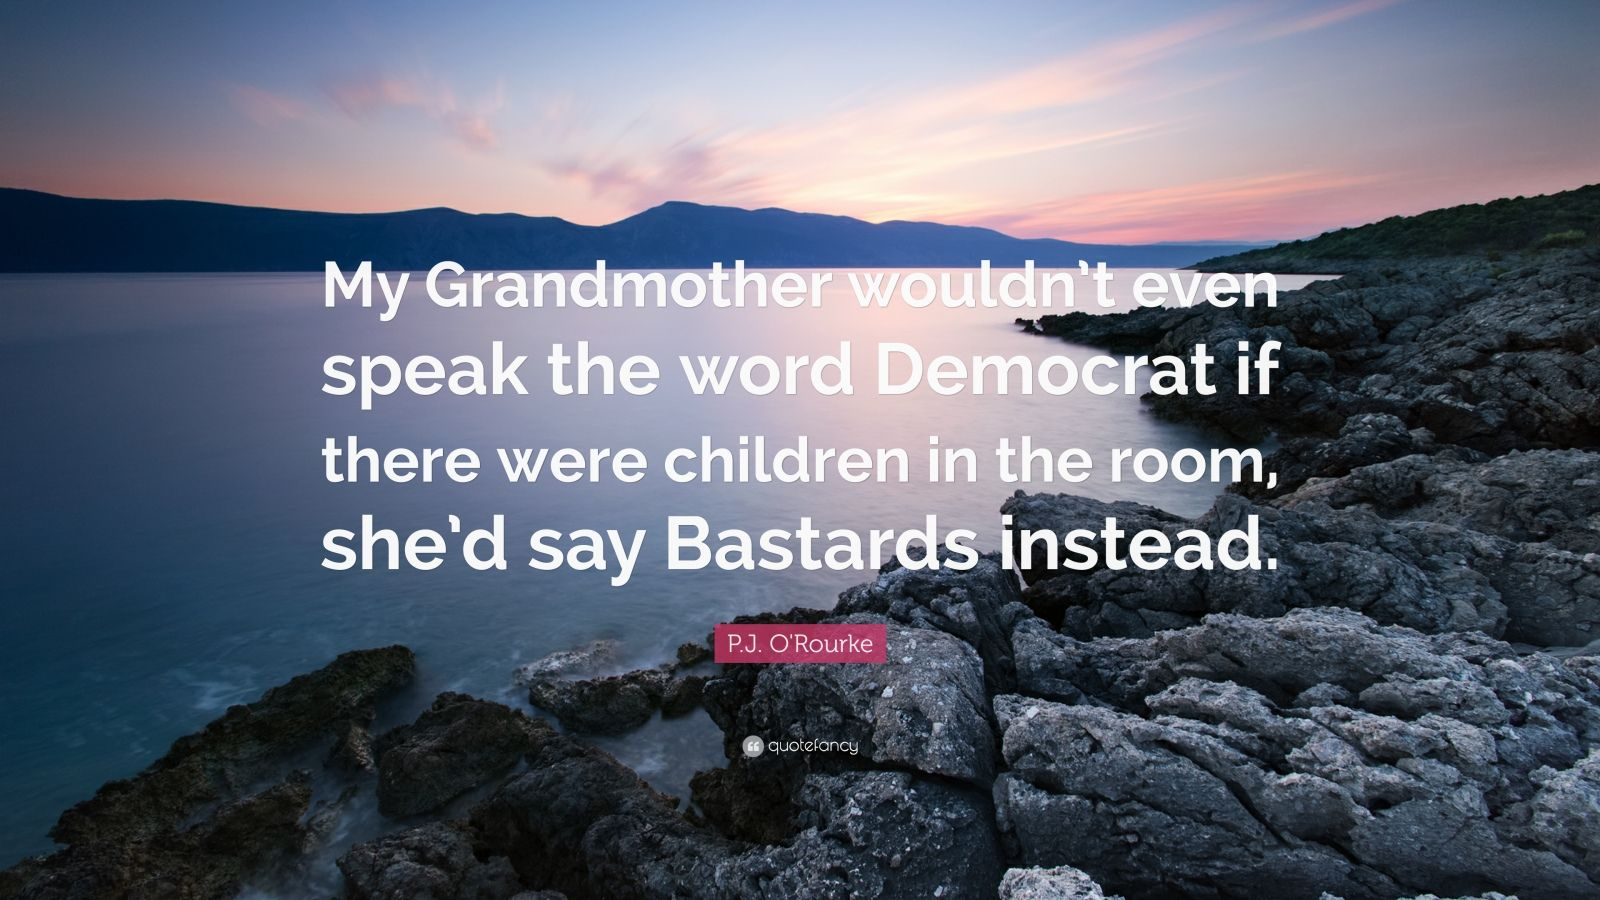 """P.J. O'Rourke Quote: """"My Grandmother wouldn't even speak the word Democrat if there were children in the room, she'd say Bastards instead."""""""